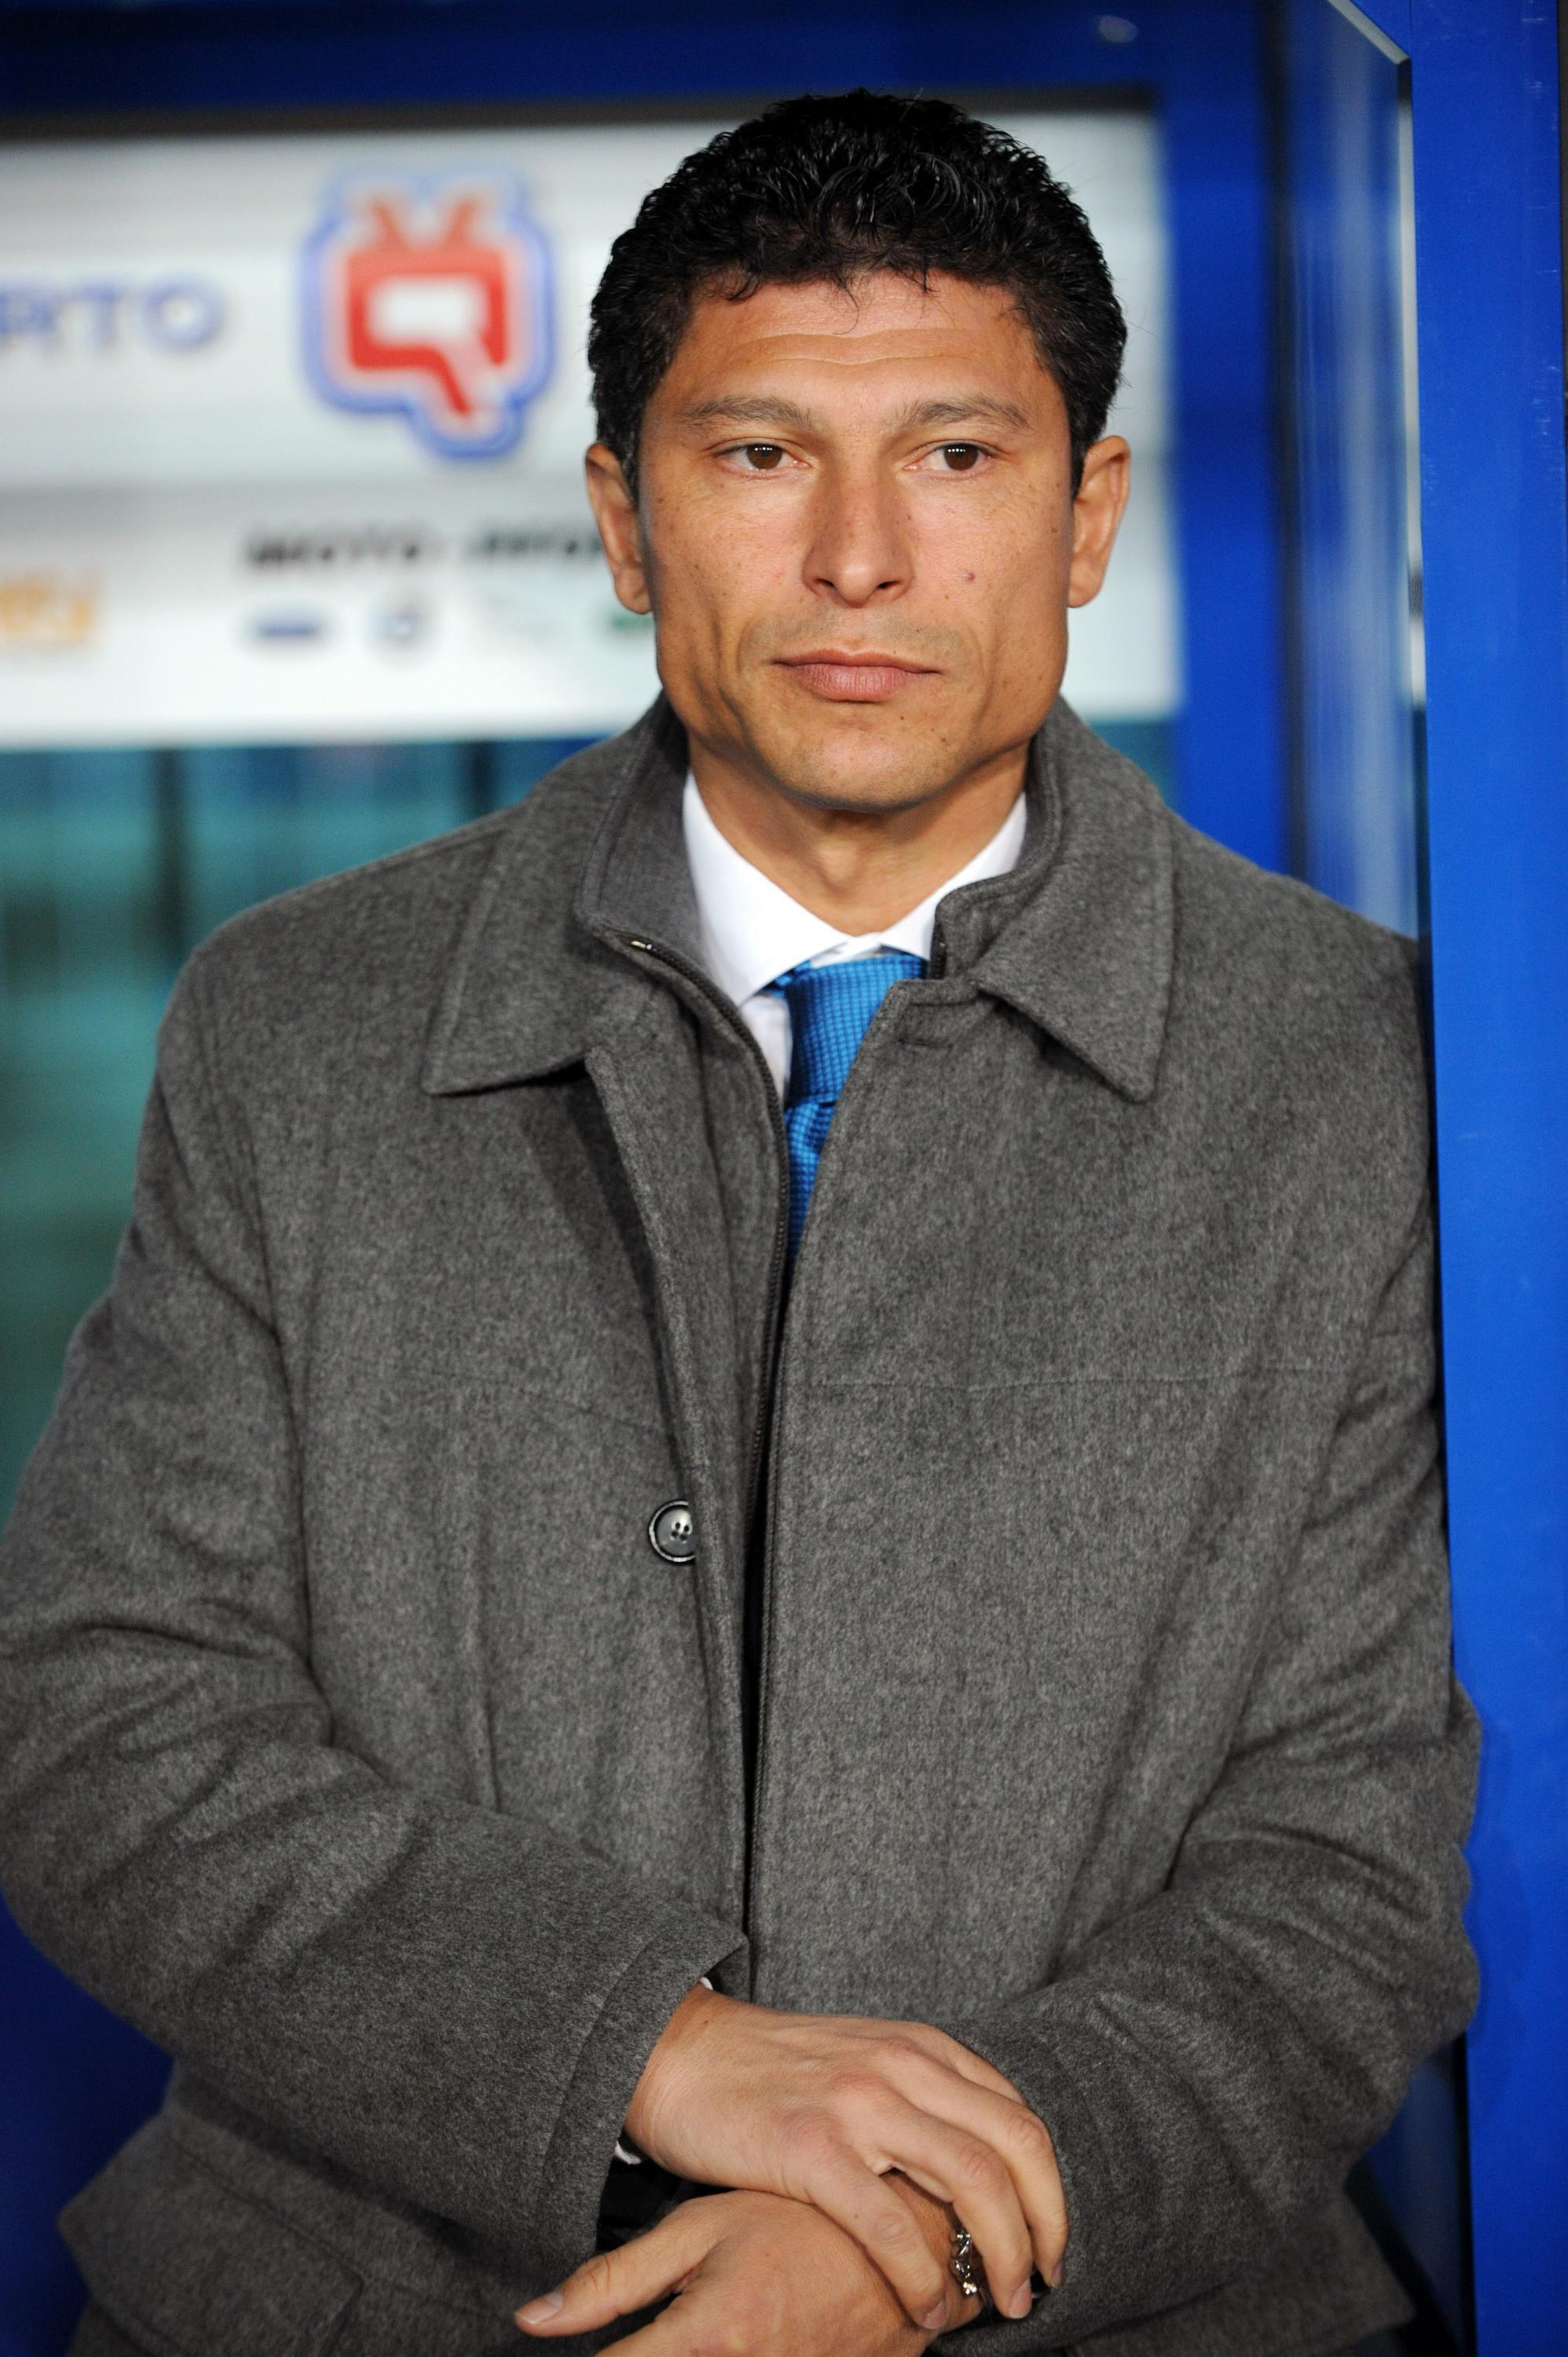 Krasimir Balakov played in the Bulgaria team that reached the last four at the 1994 World Cup.